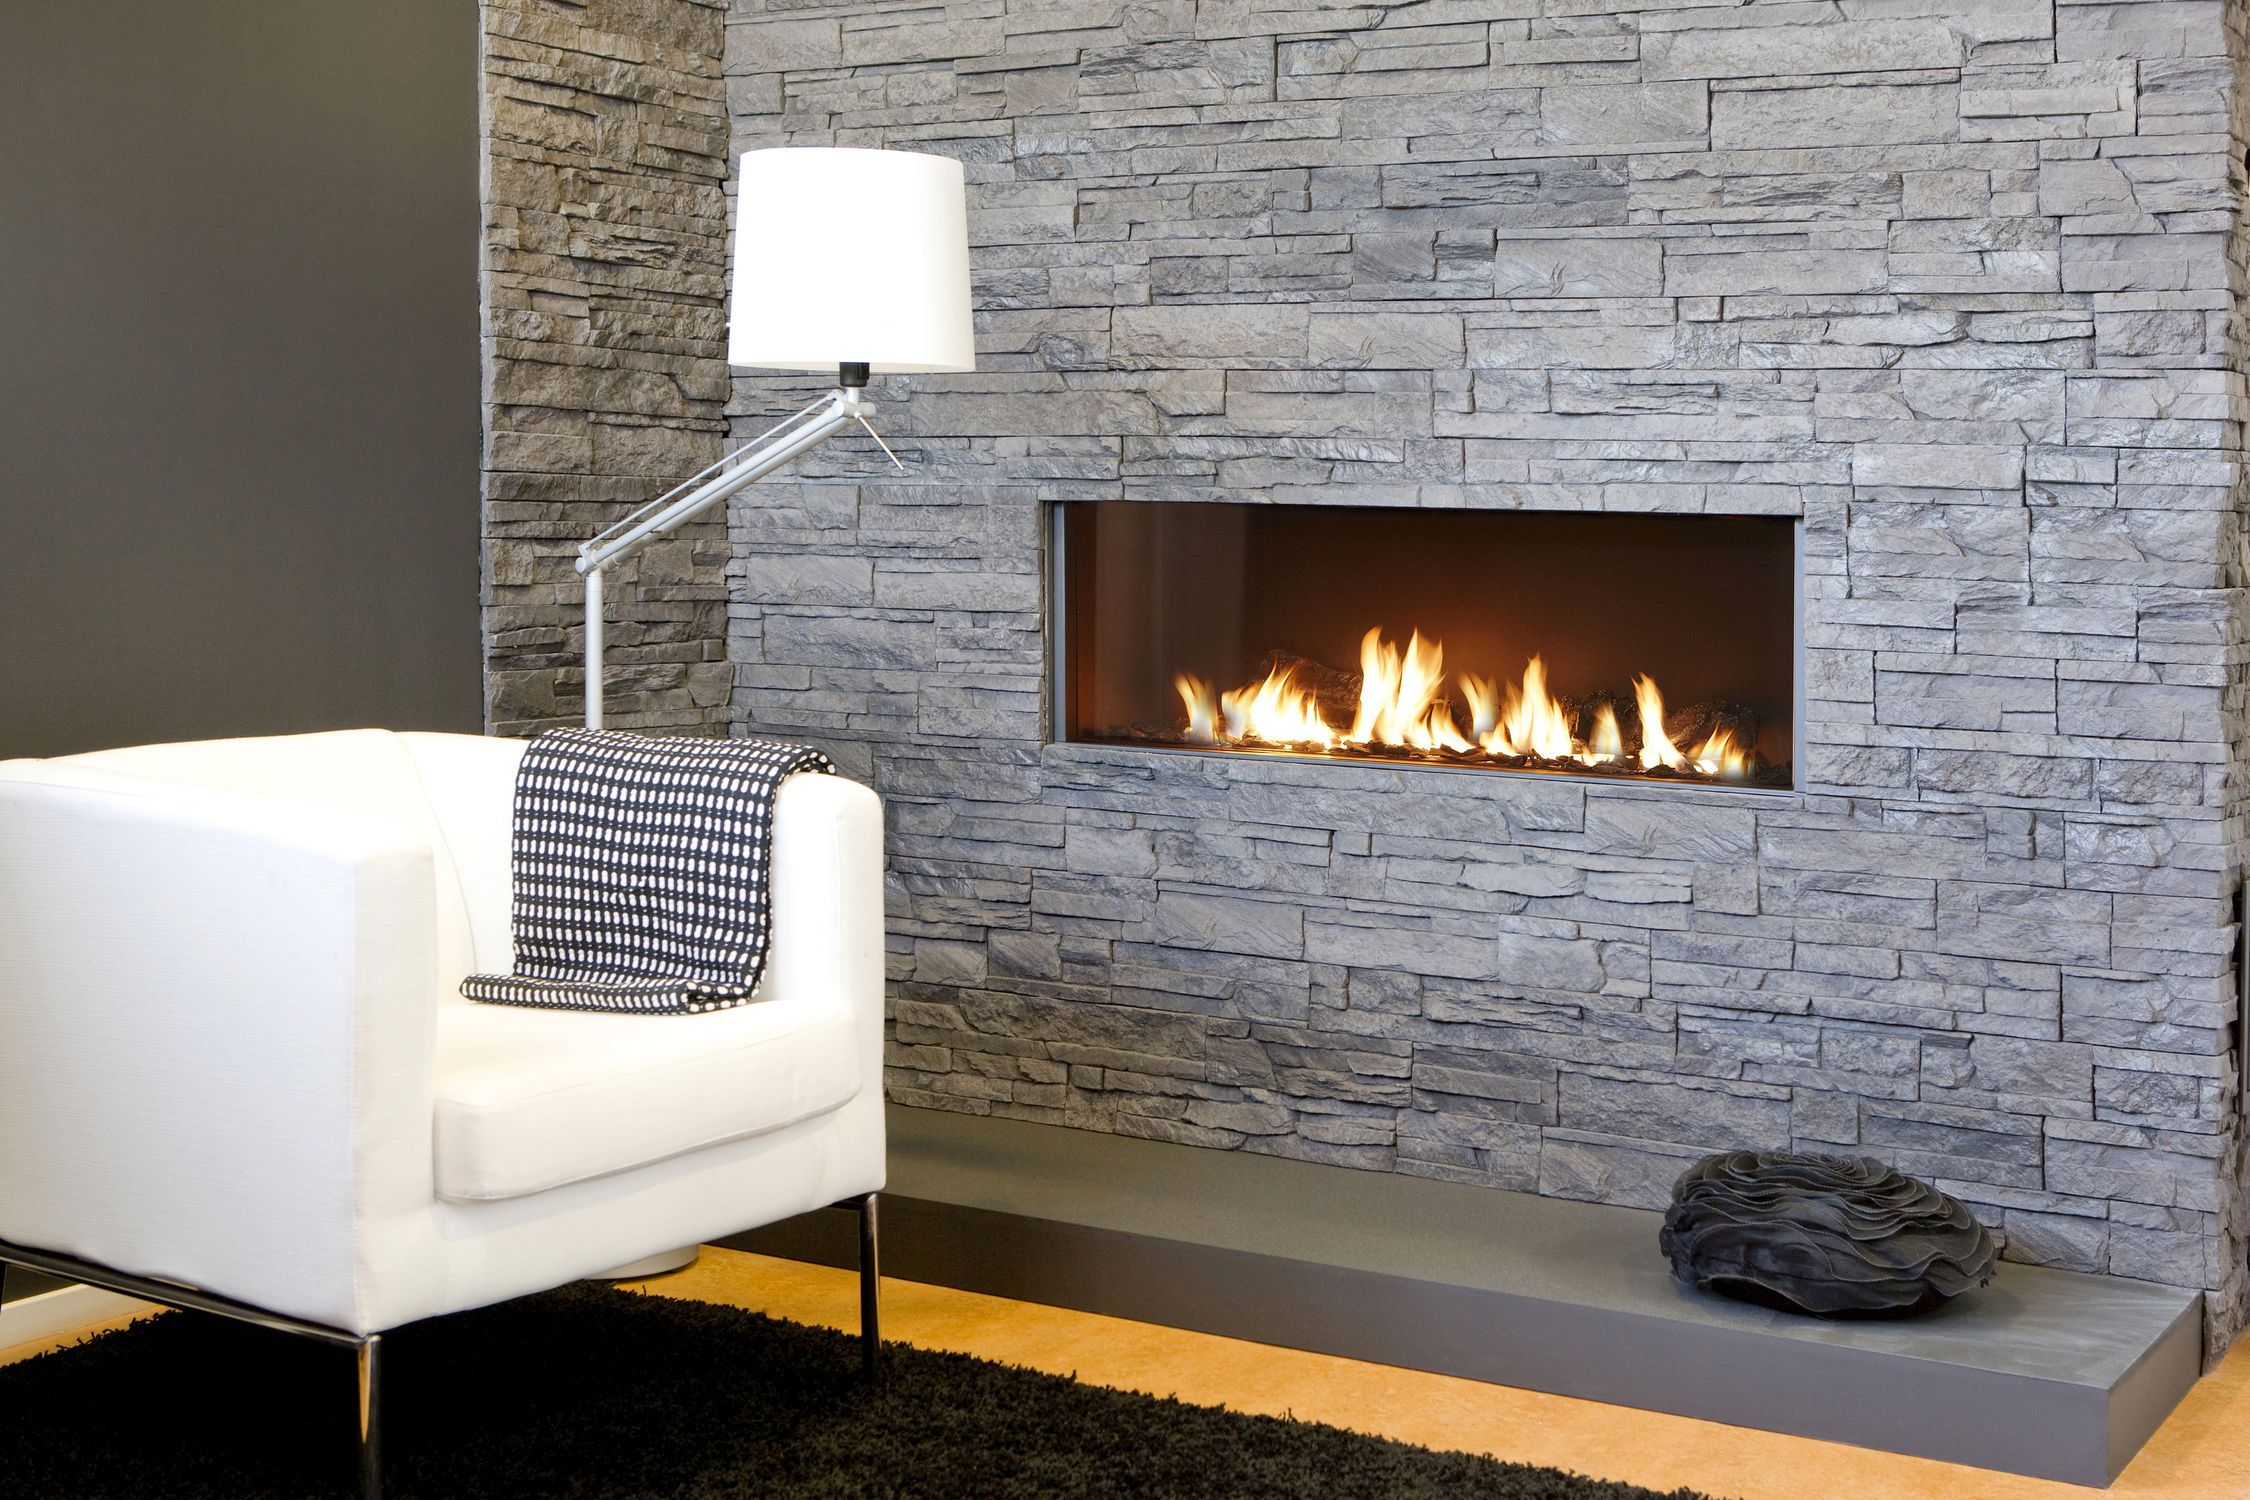 Contemporary gas fireplace designs built in fireplace modern design image collection contemporary gas